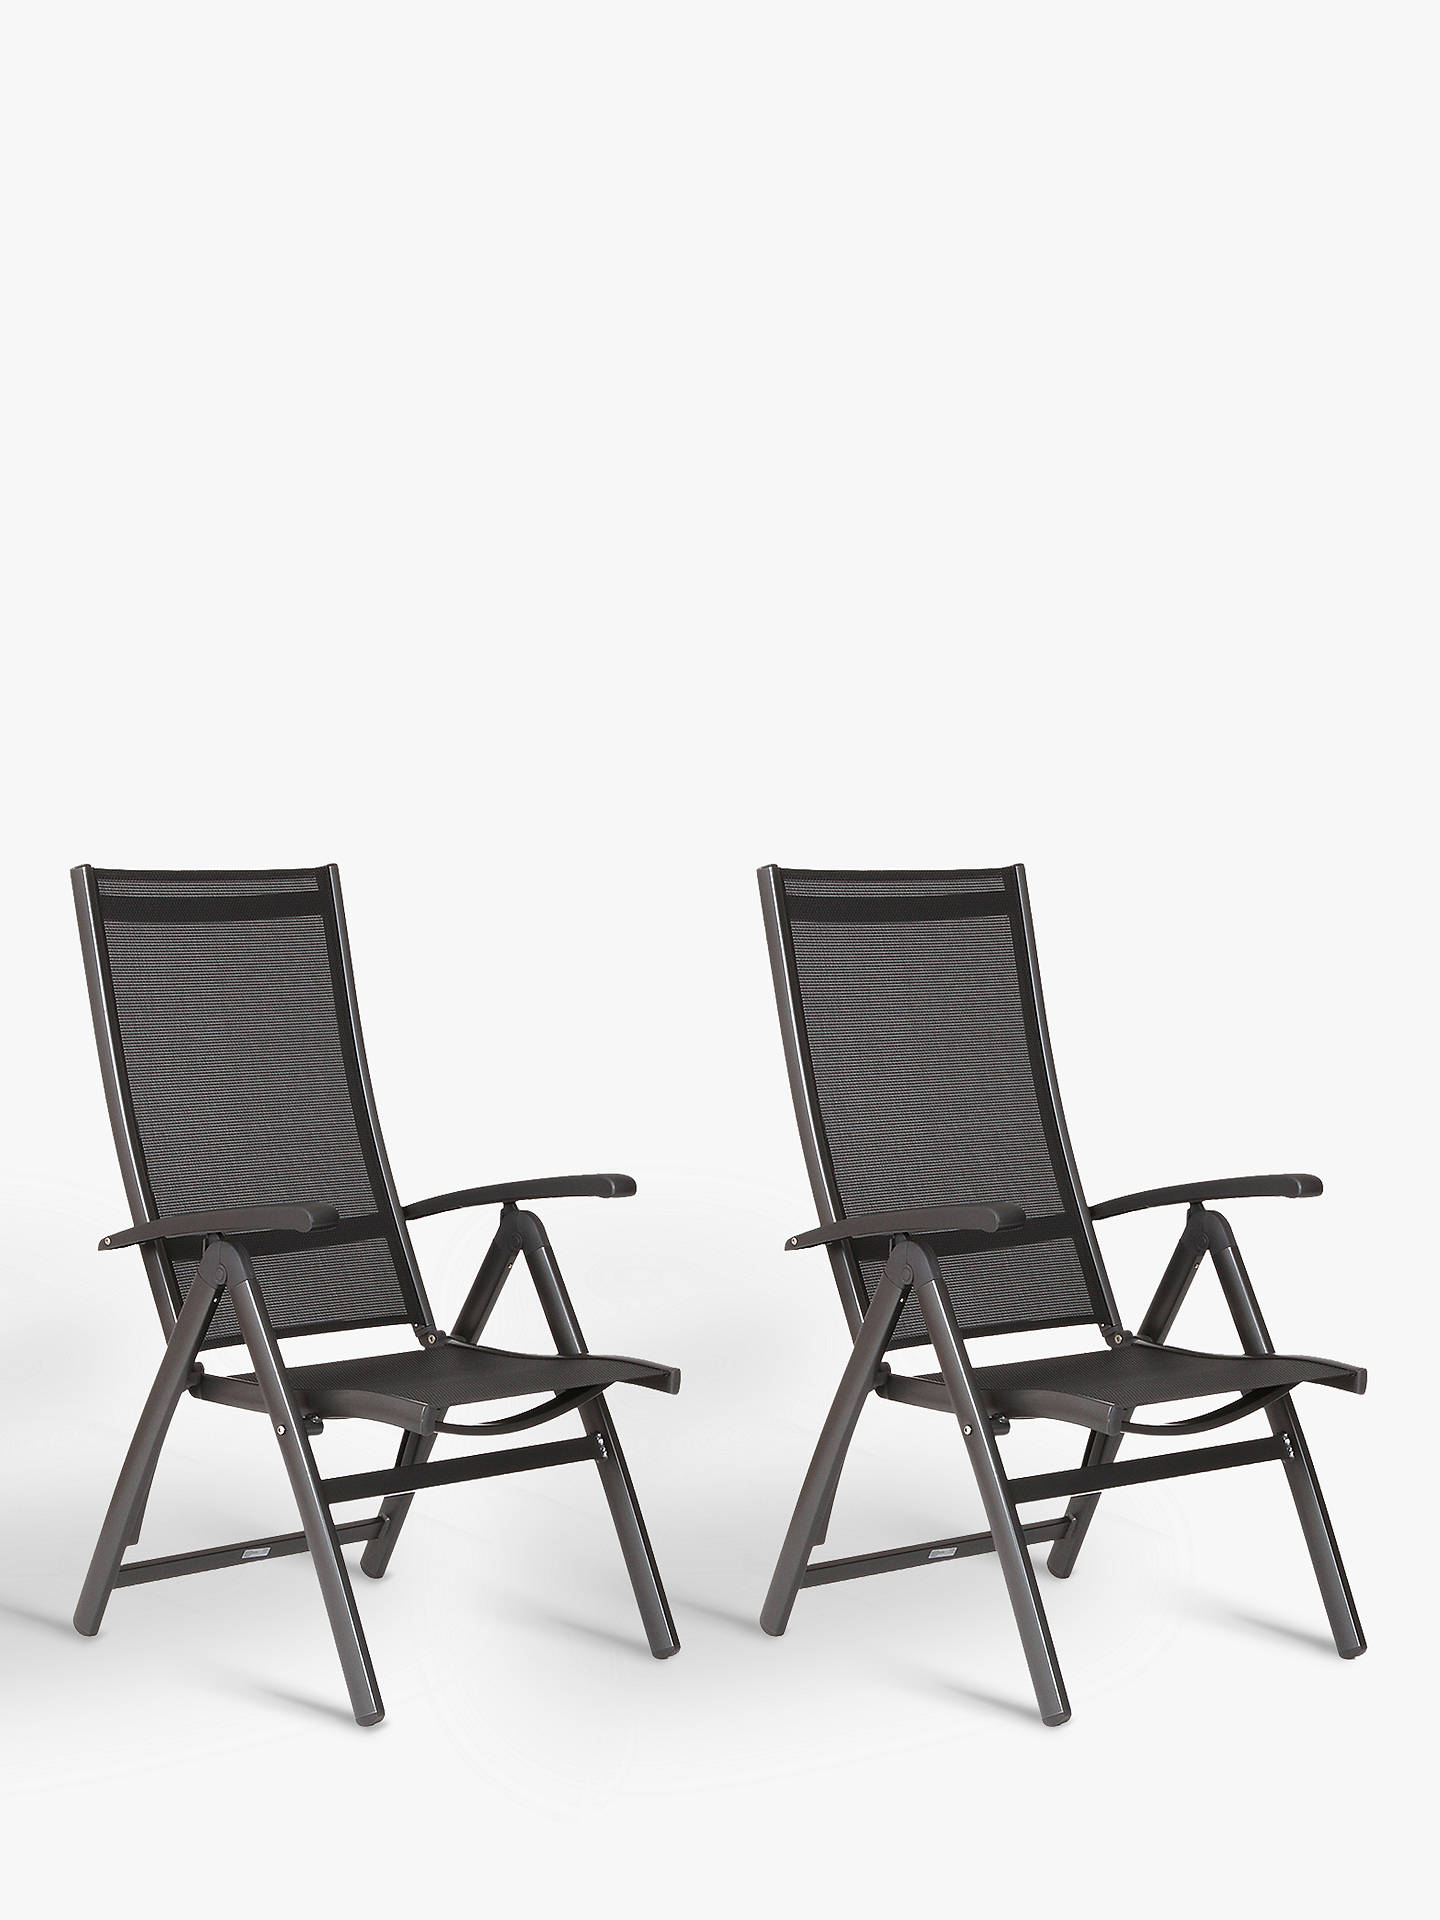 Admirable Kettler Surf Multi Position Reclining Sun Loungers Grey Set Of 2 Caraccident5 Cool Chair Designs And Ideas Caraccident5Info